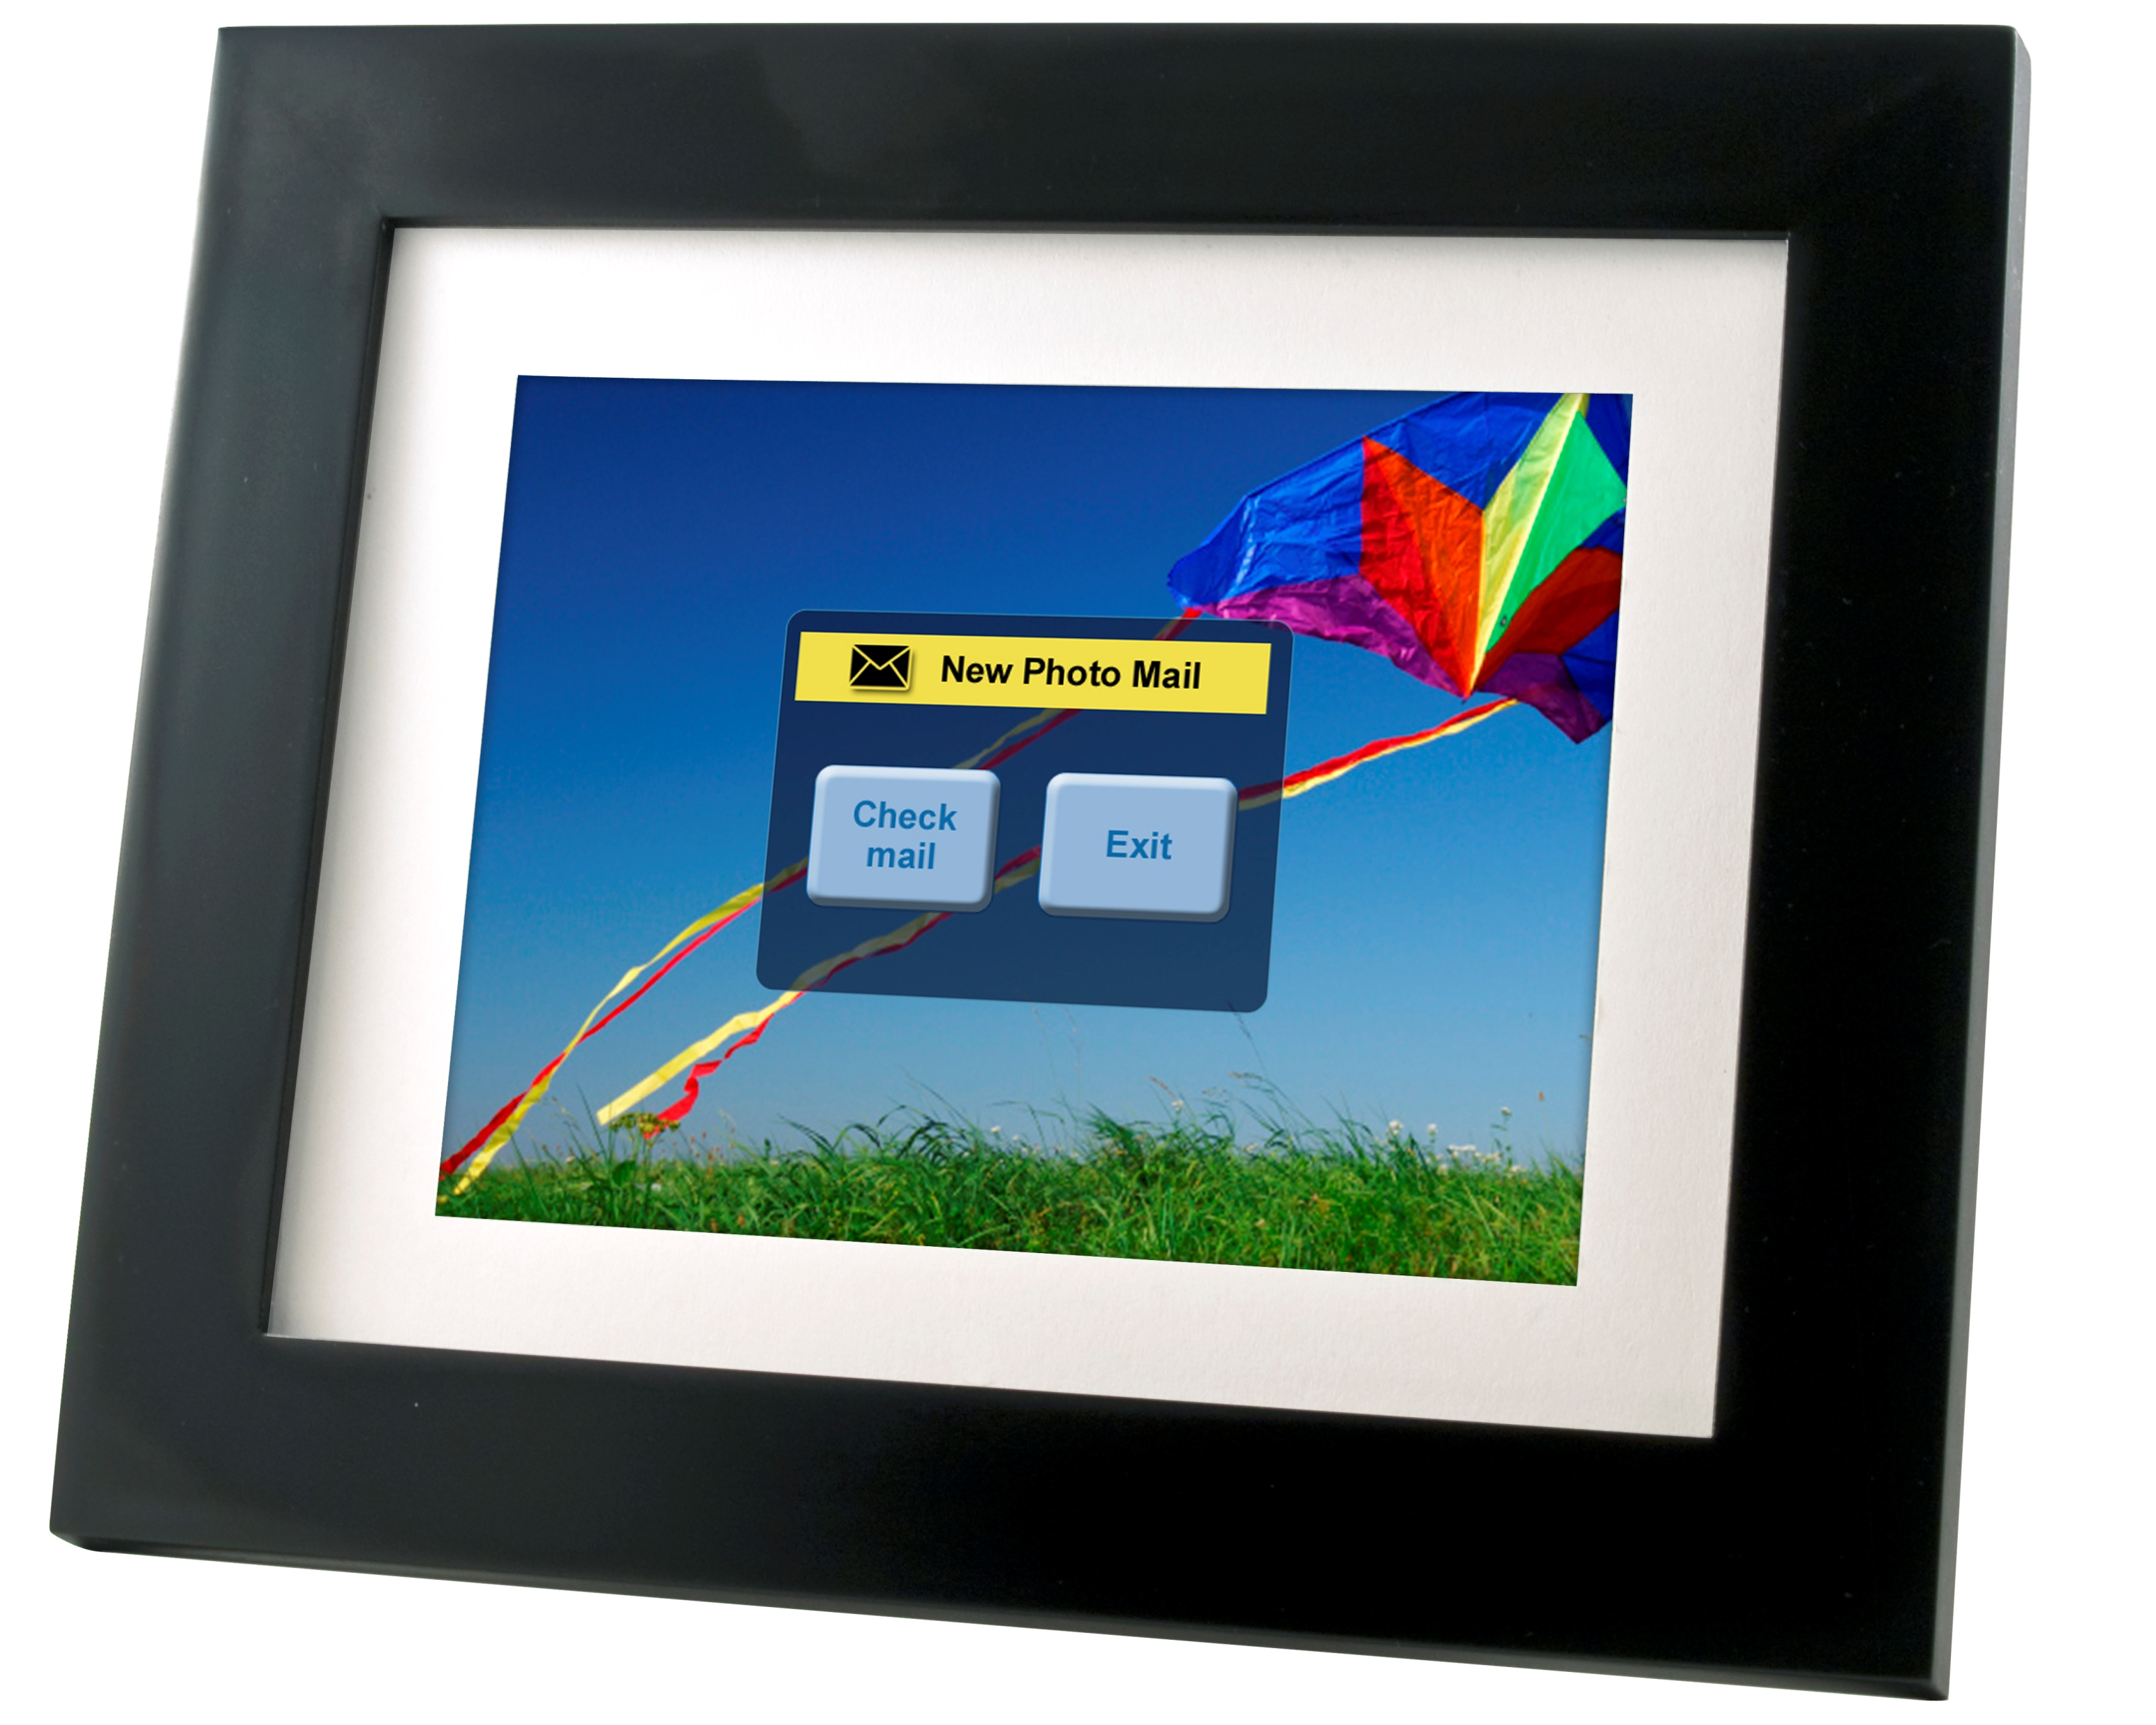 wireless picture frame image collections craft decoration ideas wireless picture frame choice image craft decoration ideas - Wireless Picture Frame